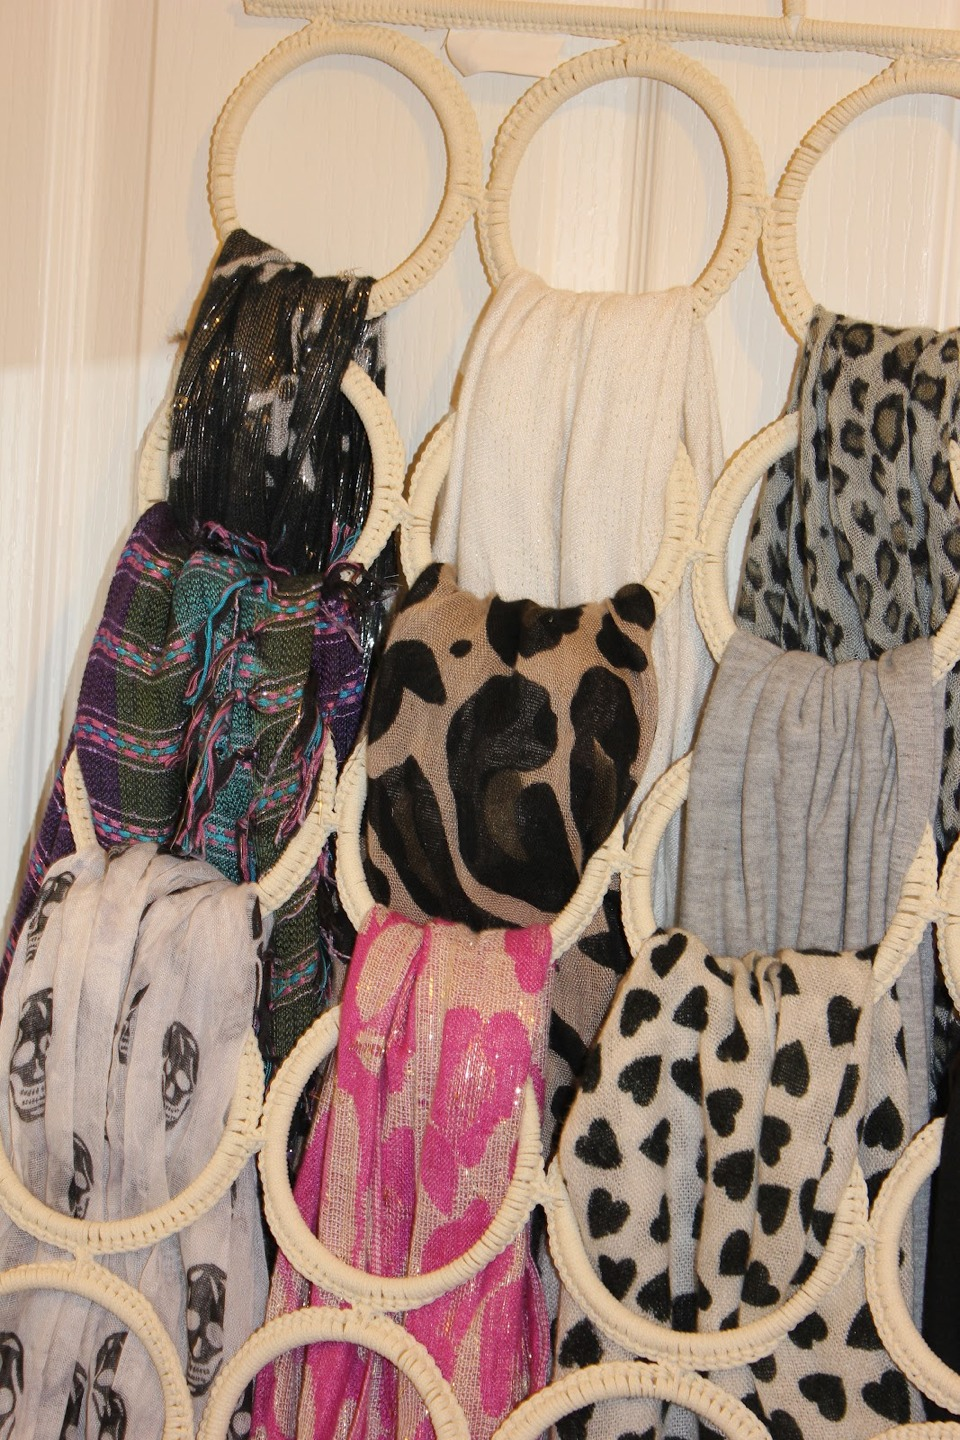 Get hoops and loop your scarfs around less hassle on trying to find a scarf u love